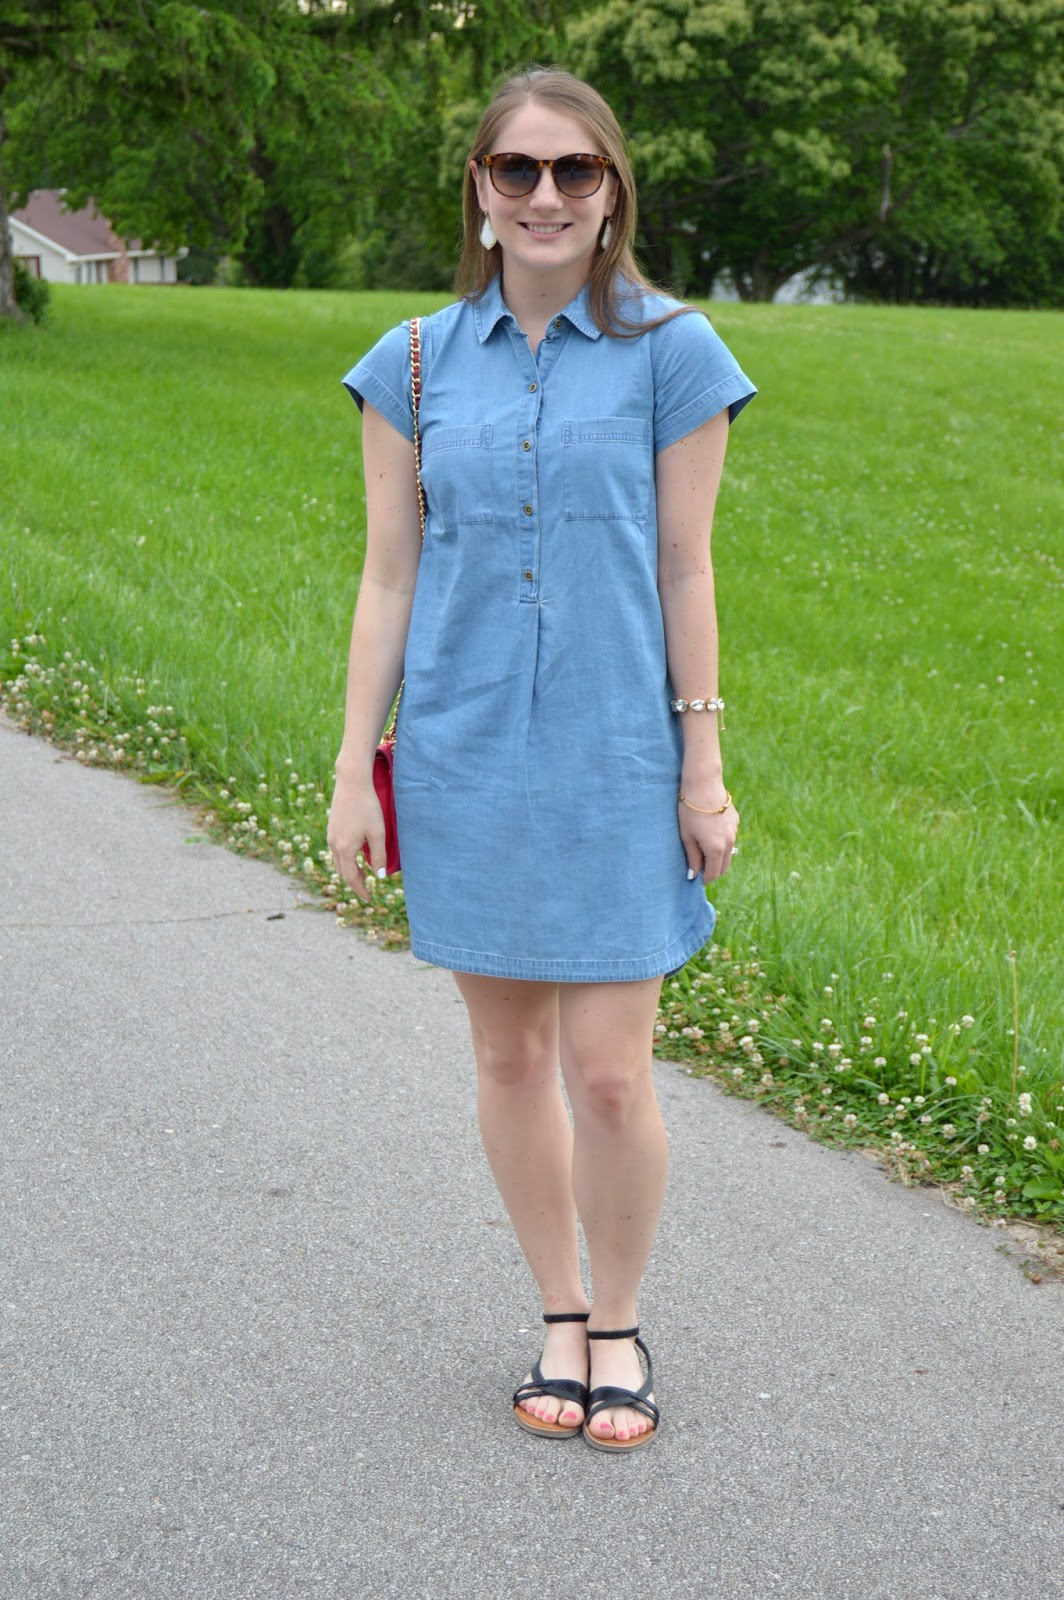 how to style a chambray dress for summer | what to wear with a chambray dress | light wash chambray dress | what looks good with chambray | chambray styling ideas | summer lookbook | summer outfits | a memory of us